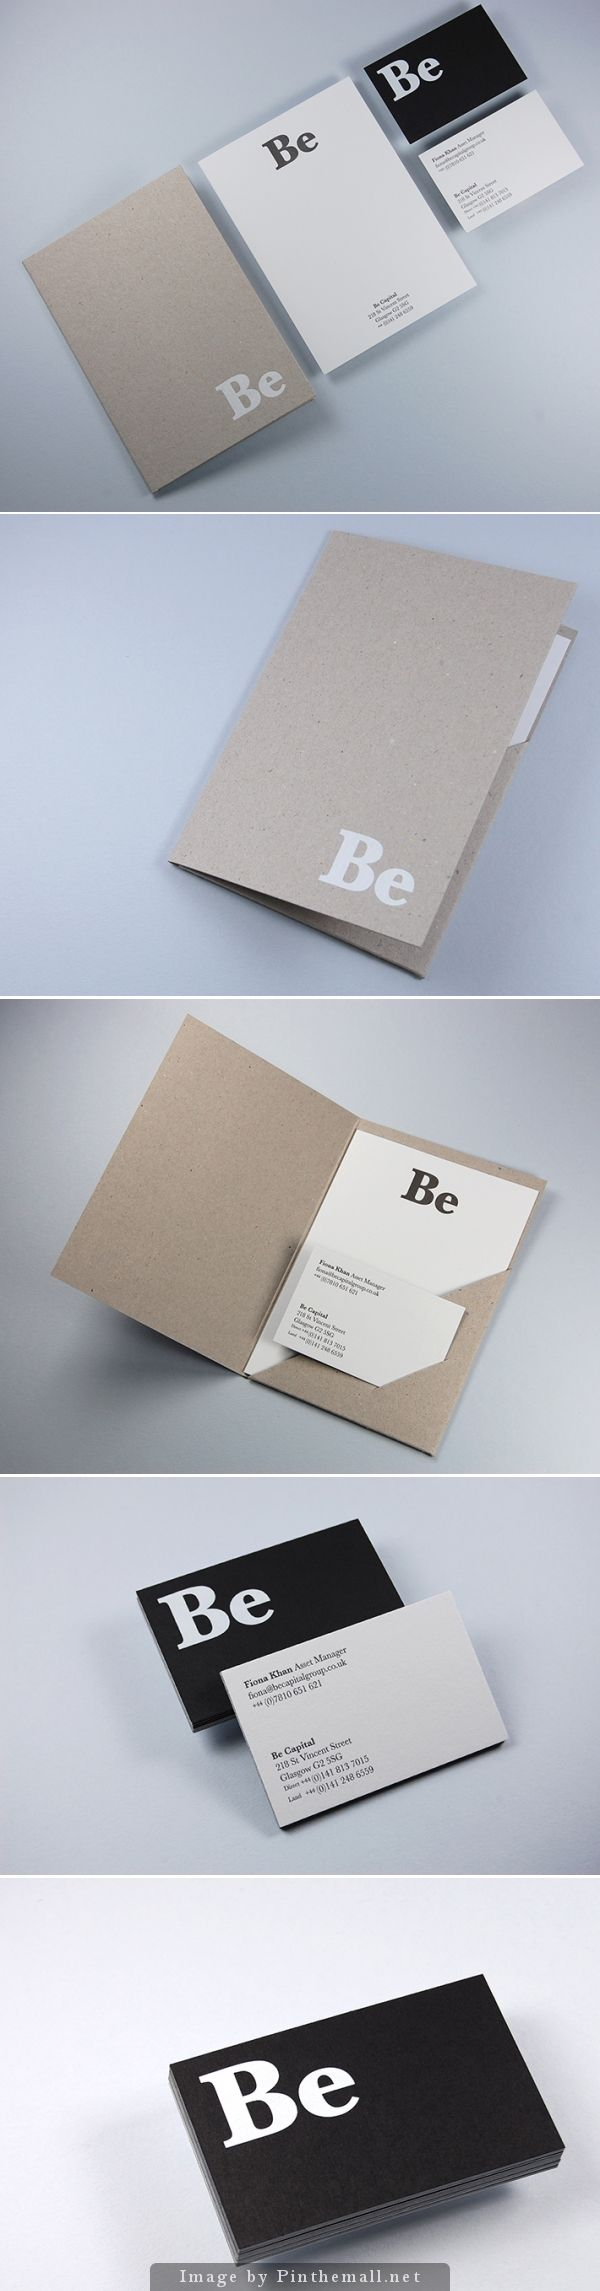 #corporate identity #branding business card letterpress notebook minimal craft paper folder flyer #graphicdesign